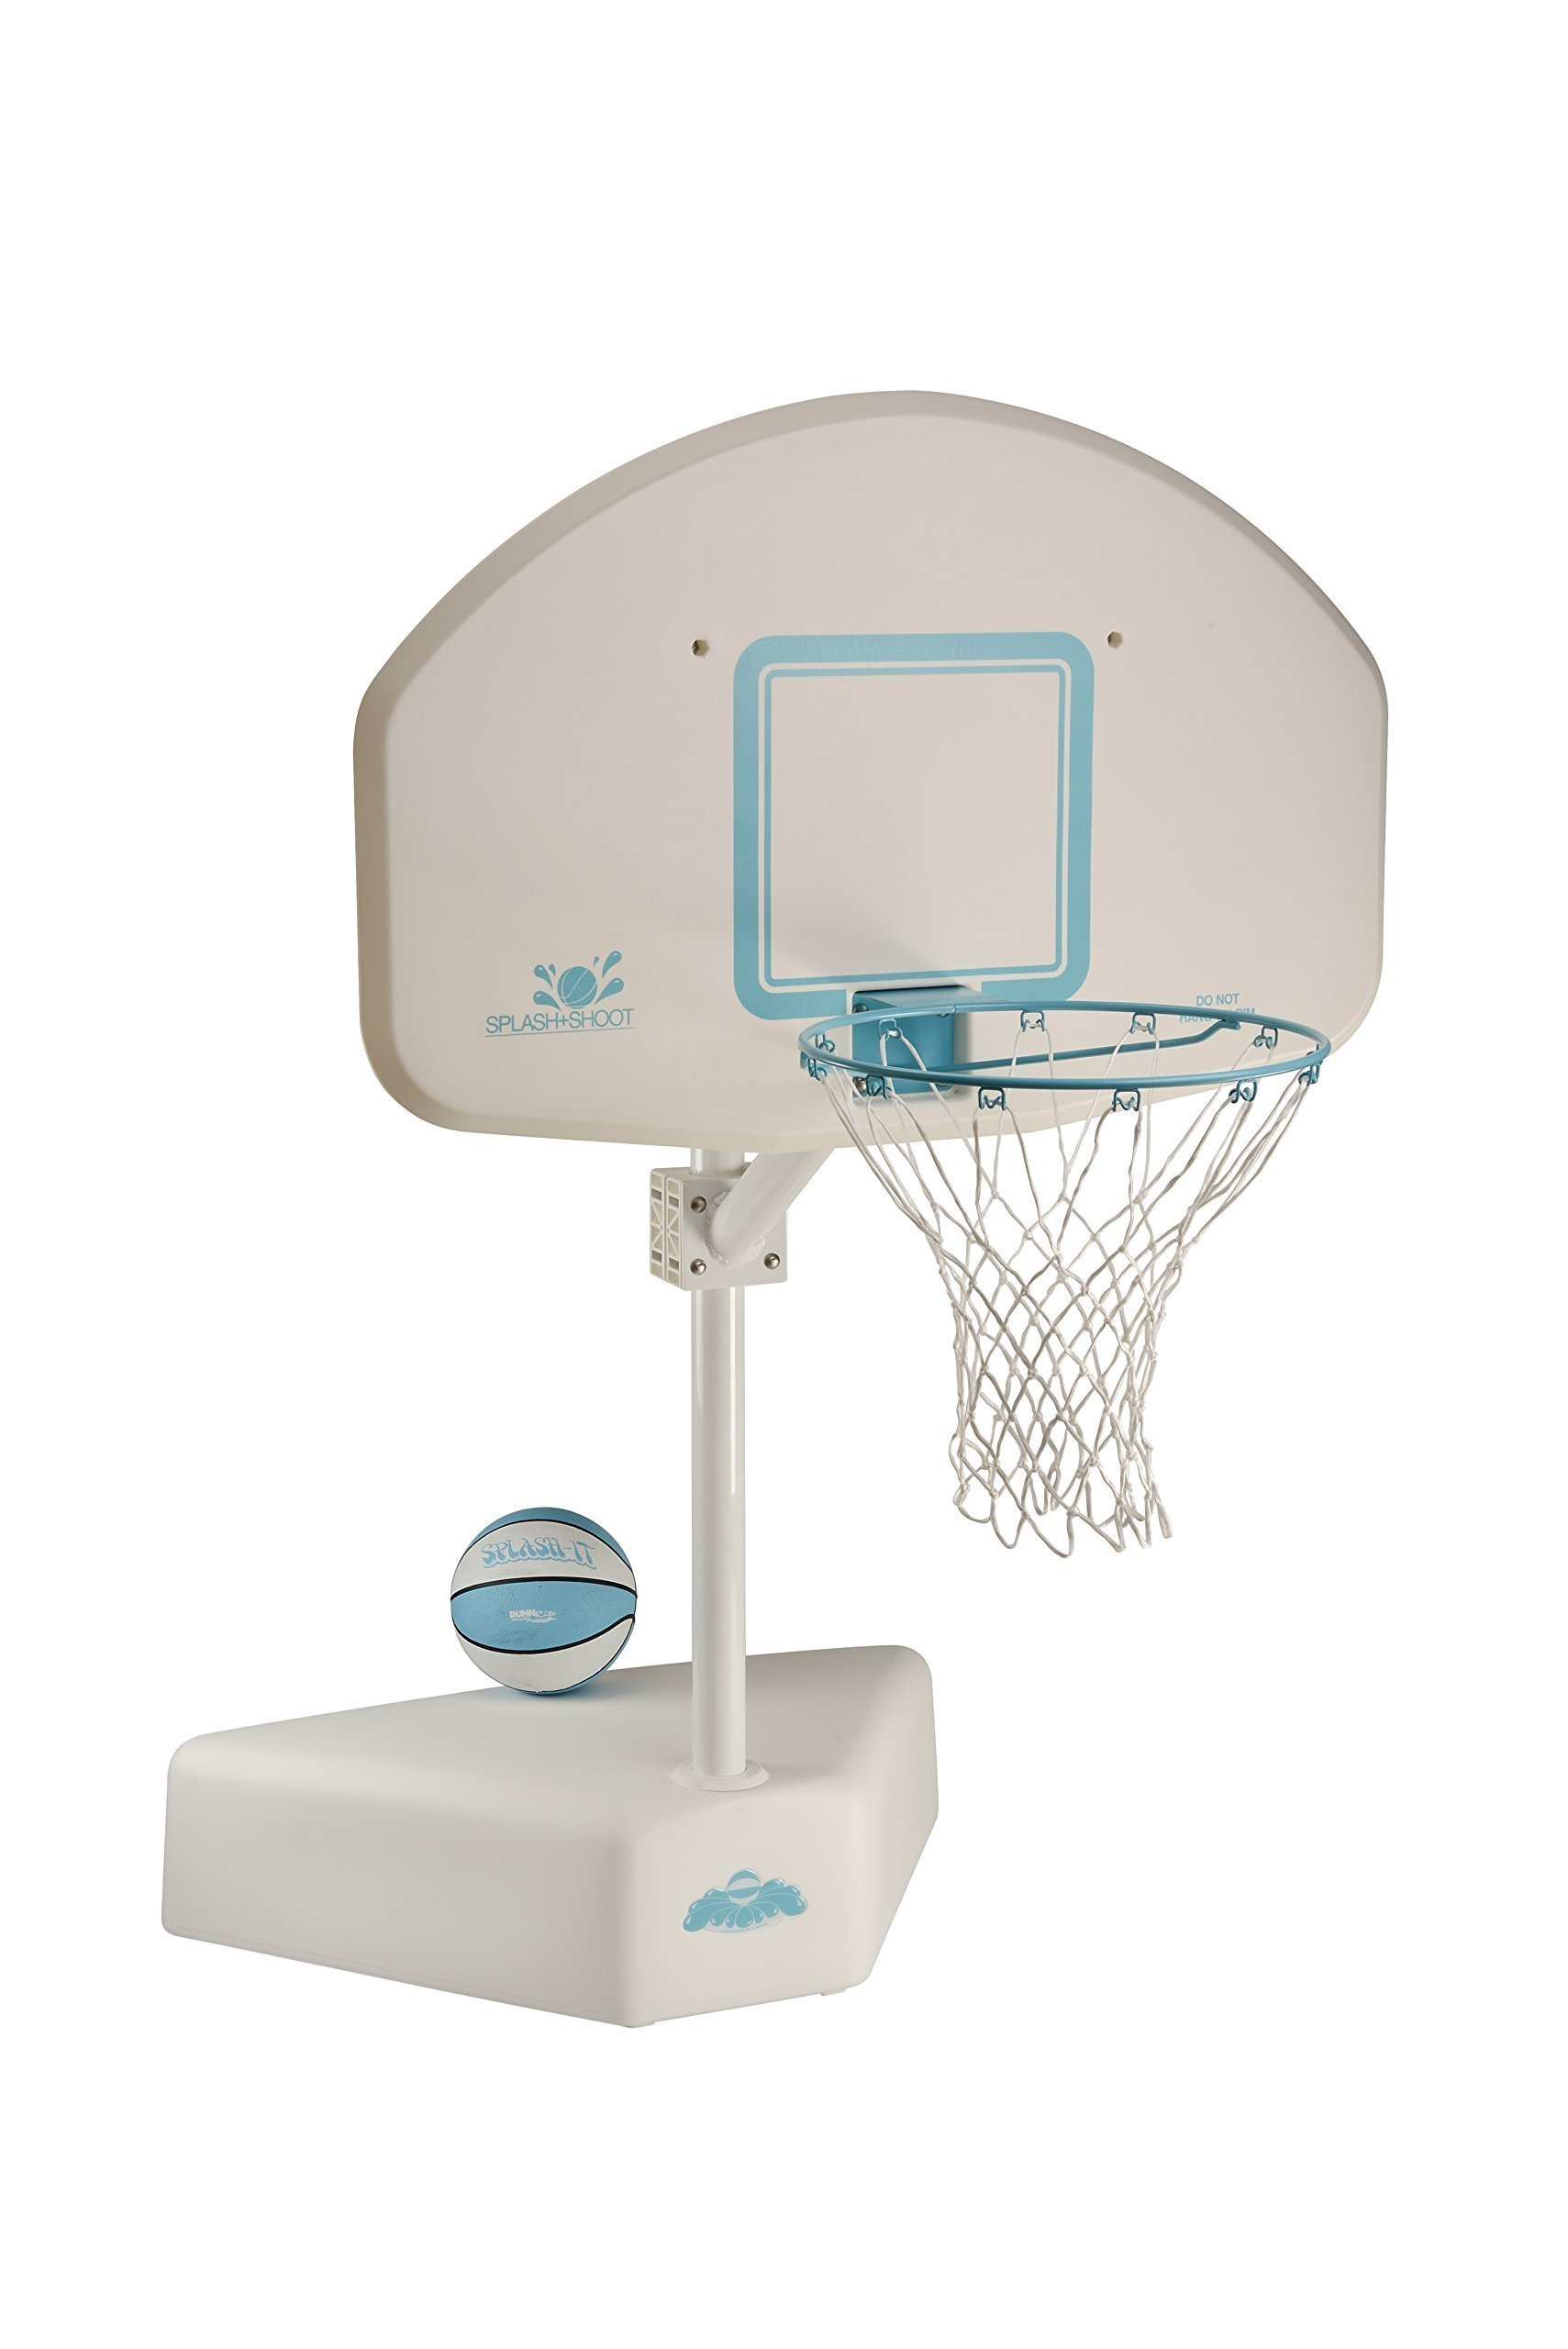 Dunnrite Splash and Shoot Swimming Pool Basketball Hoop with Stainless Steel Rim (B600) by Dunnrite Products